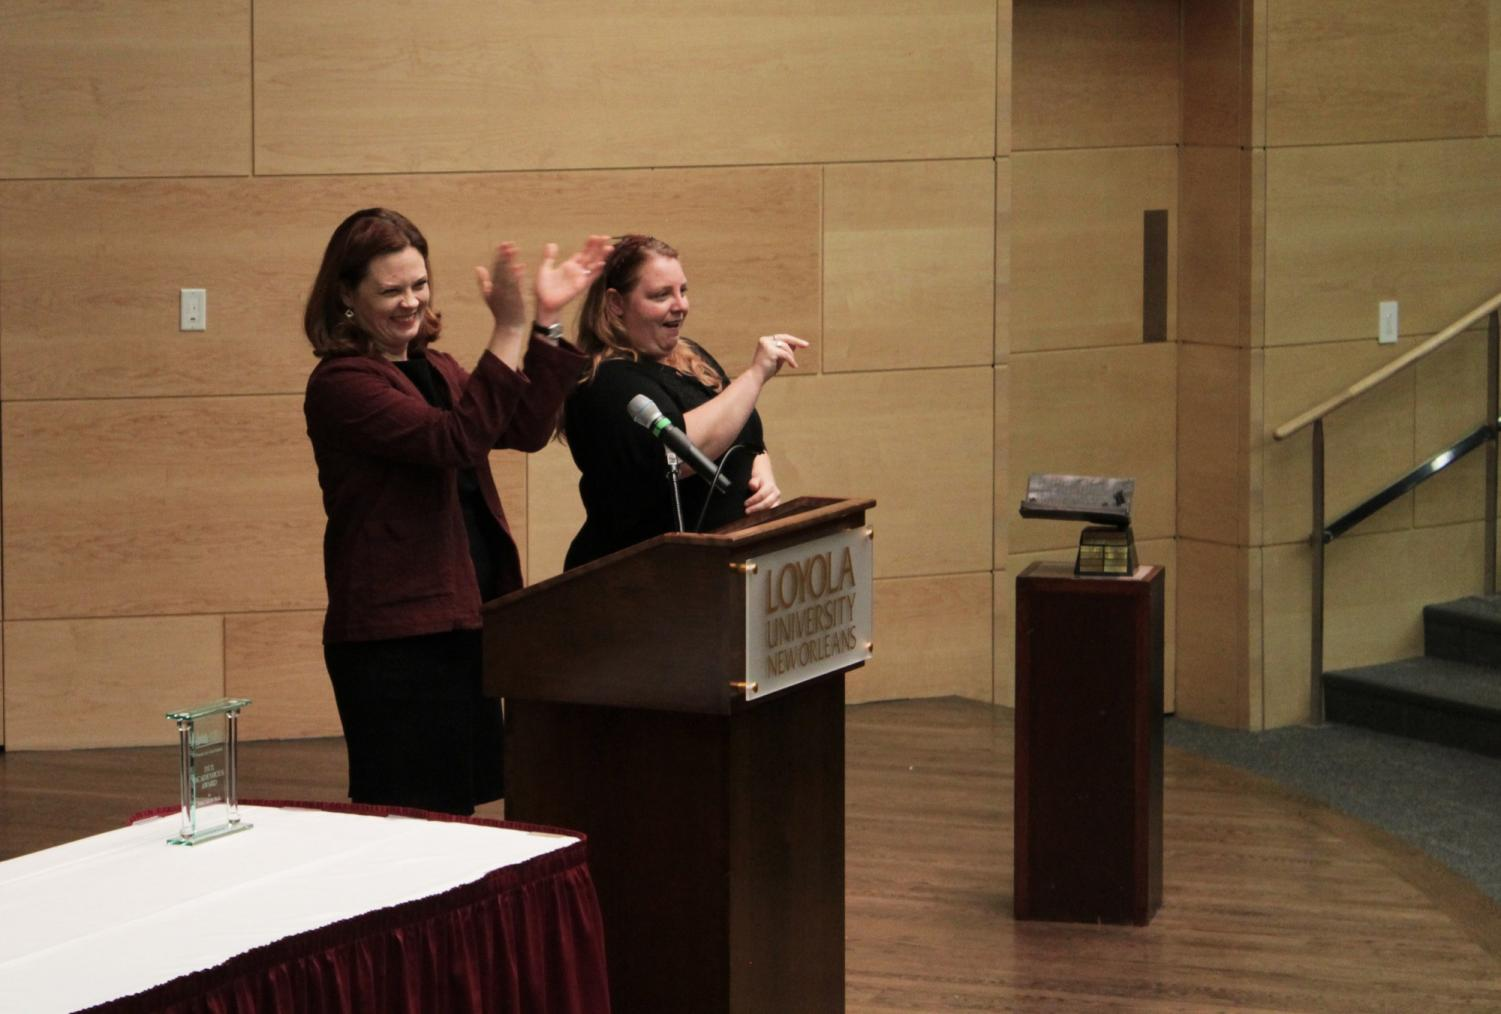 President Tania Tetlow speaks at the Spring Convocation in Nunemaker Hall on Jan. 17, 2020. Tetlow shared news about the university's financial situation at the ceremony.